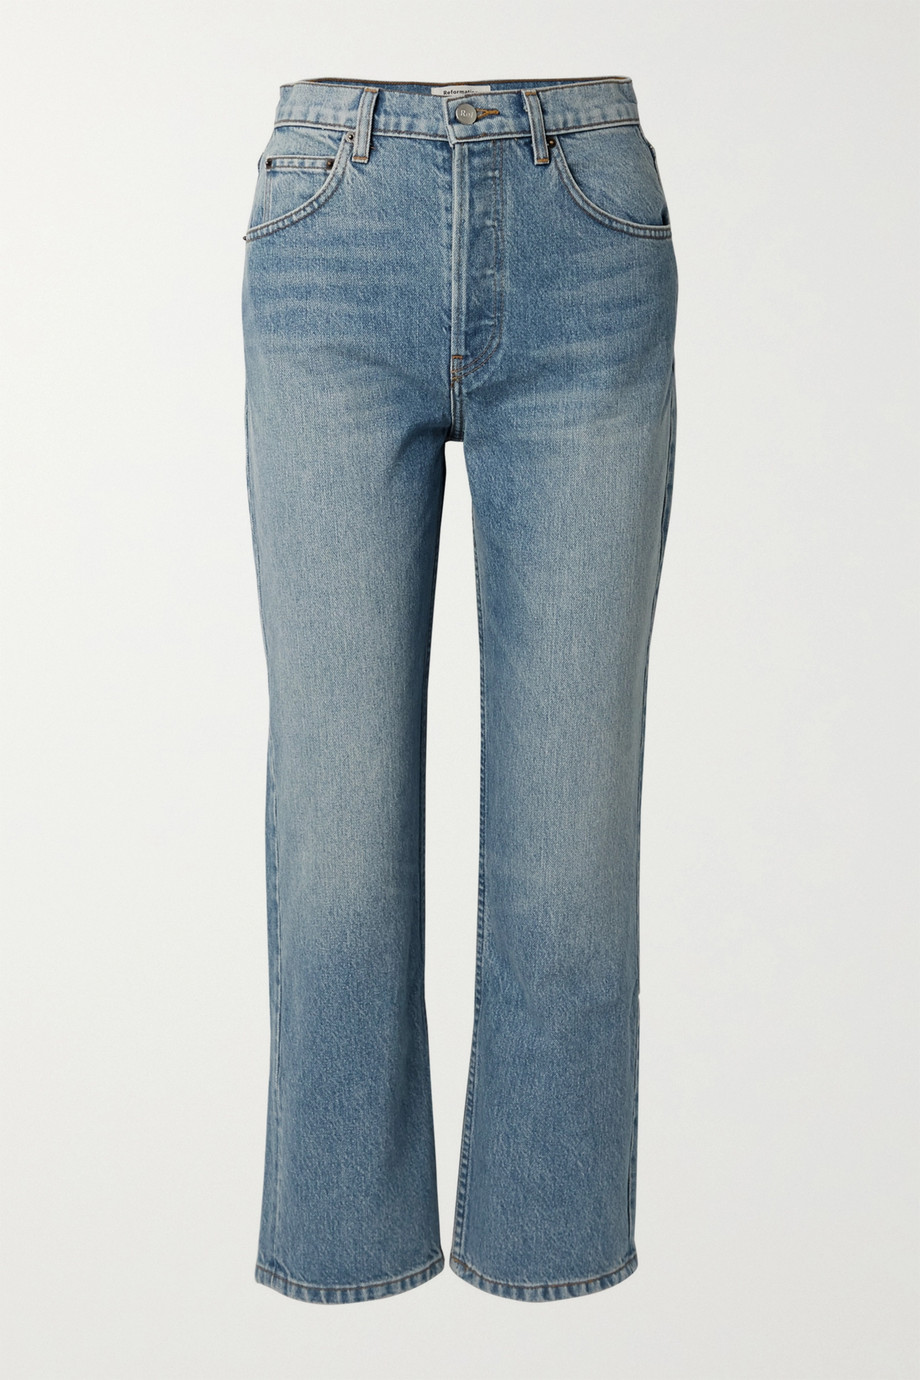 Reformation Cynthia cropped high-rise straight-leg jeans